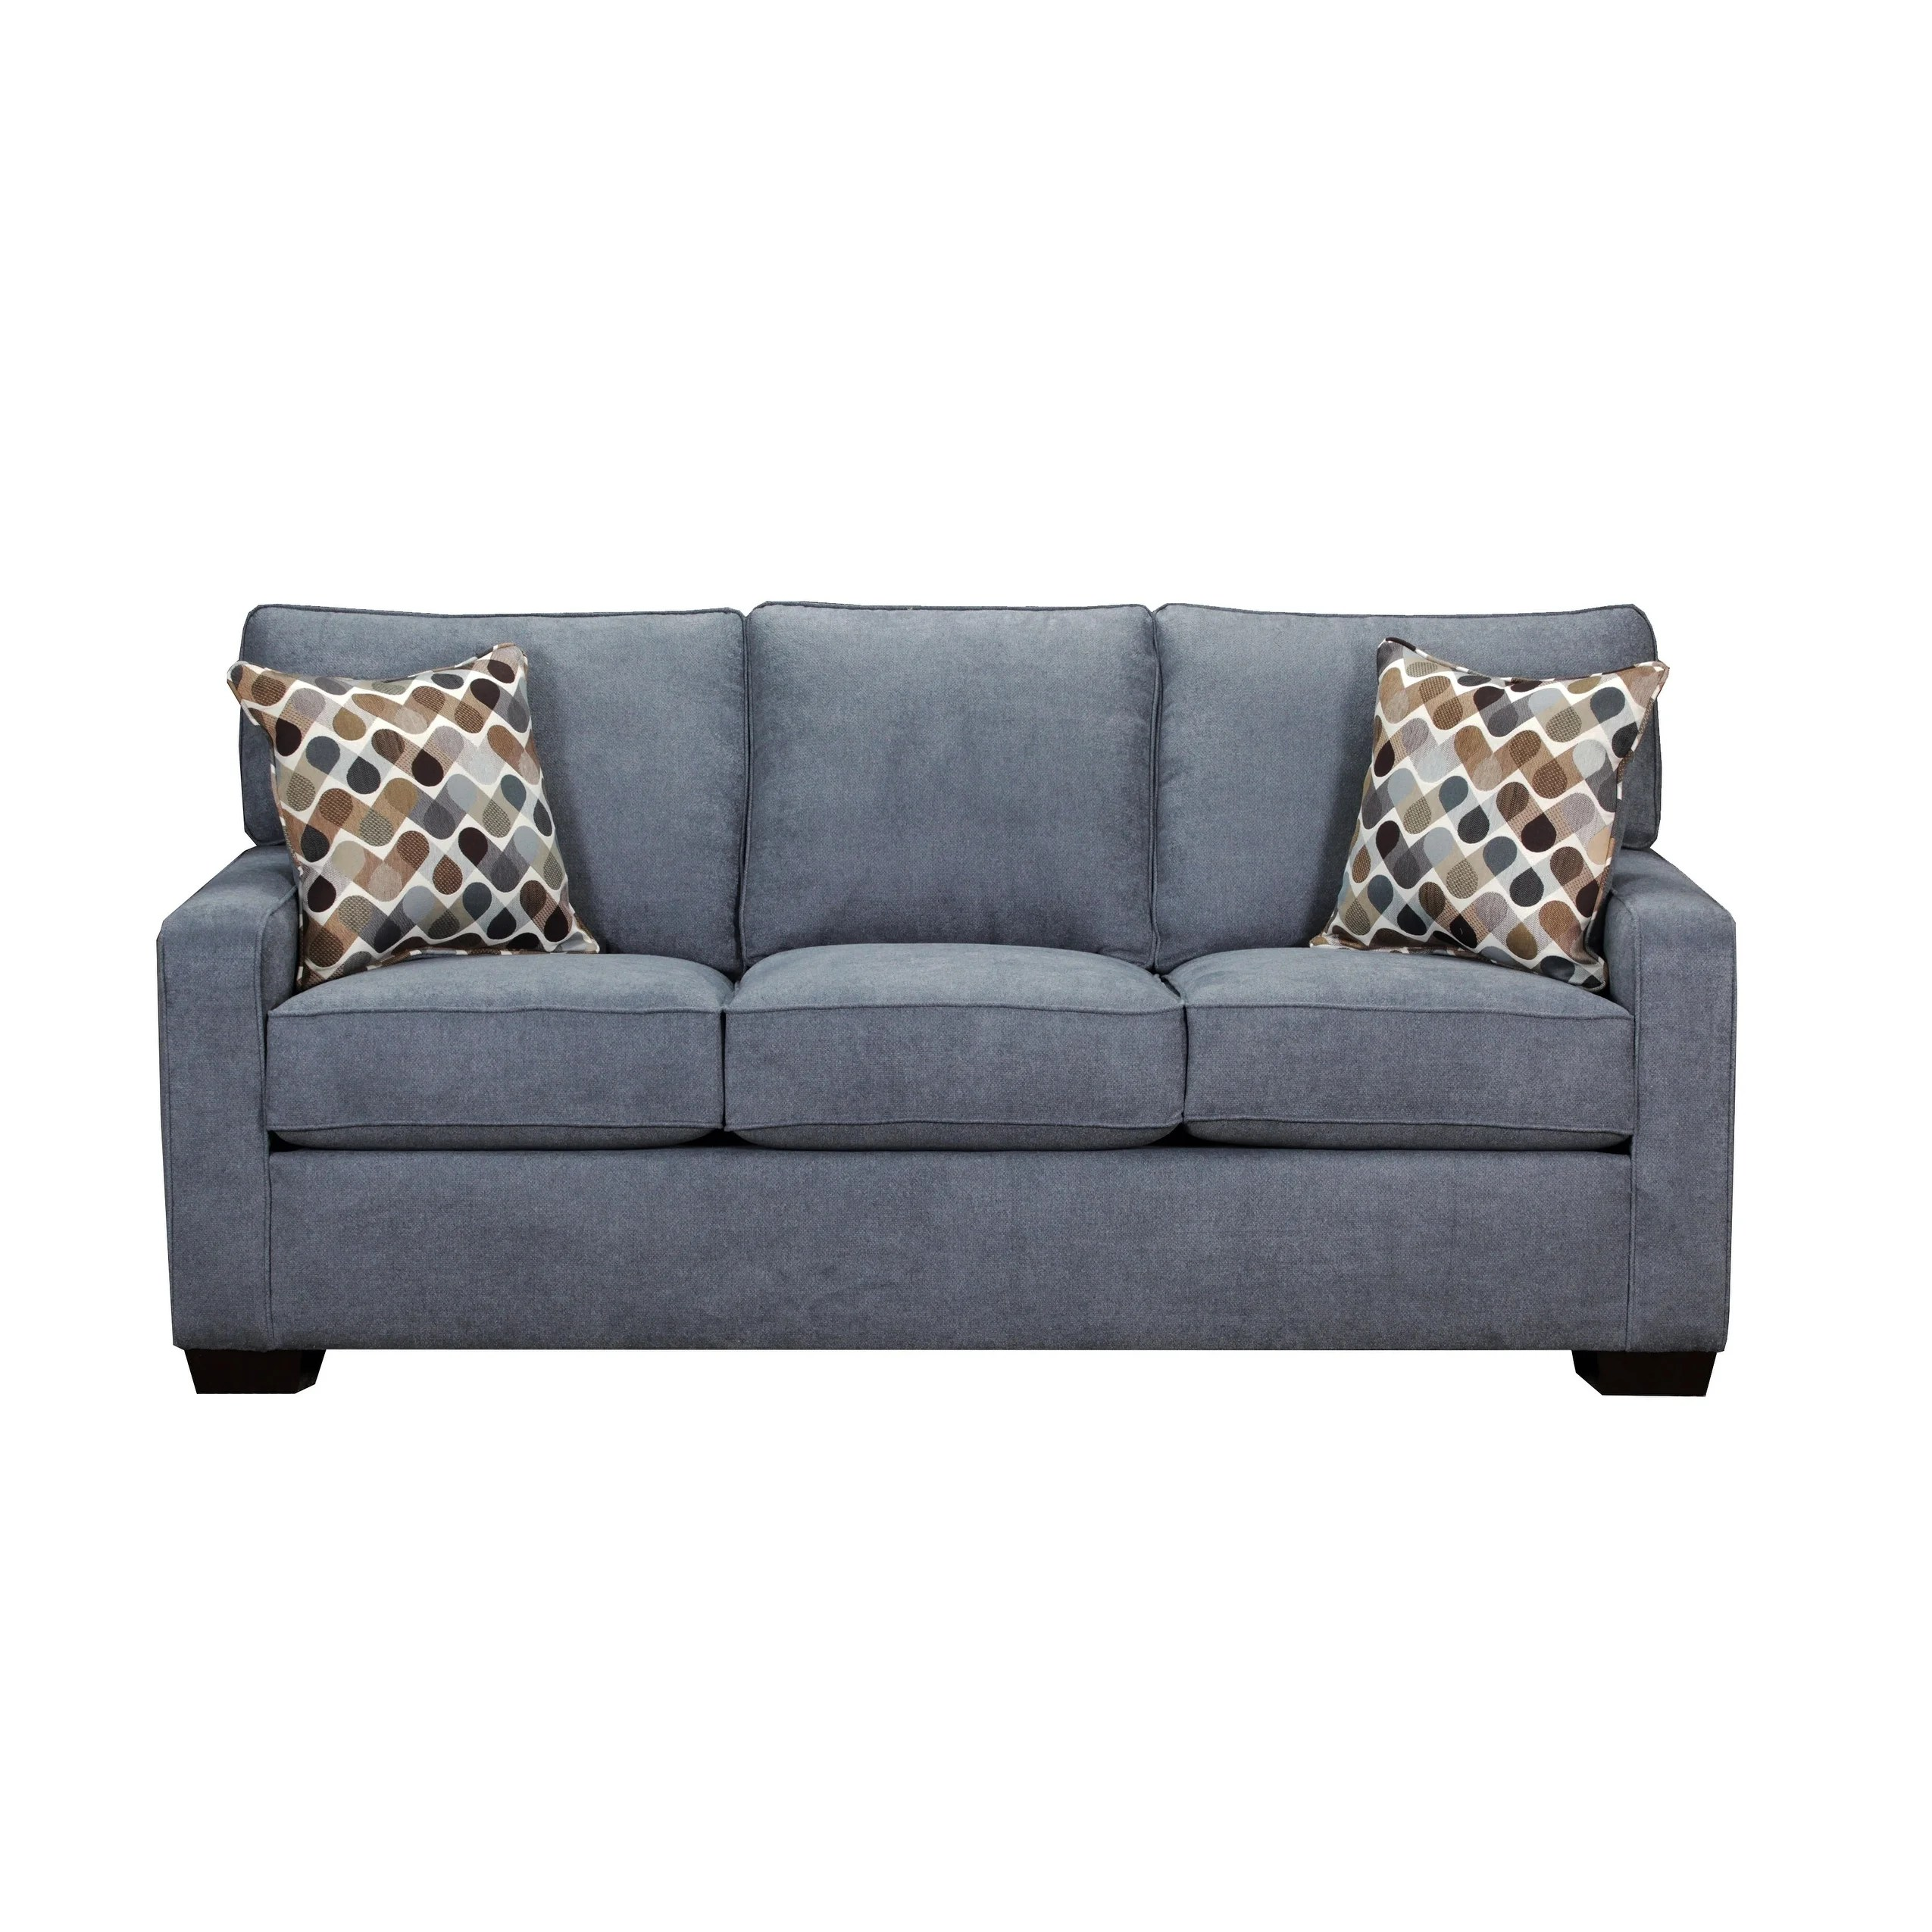 Couch Upholstery Fourways Simmons Upholstery Mia Denim Sofa